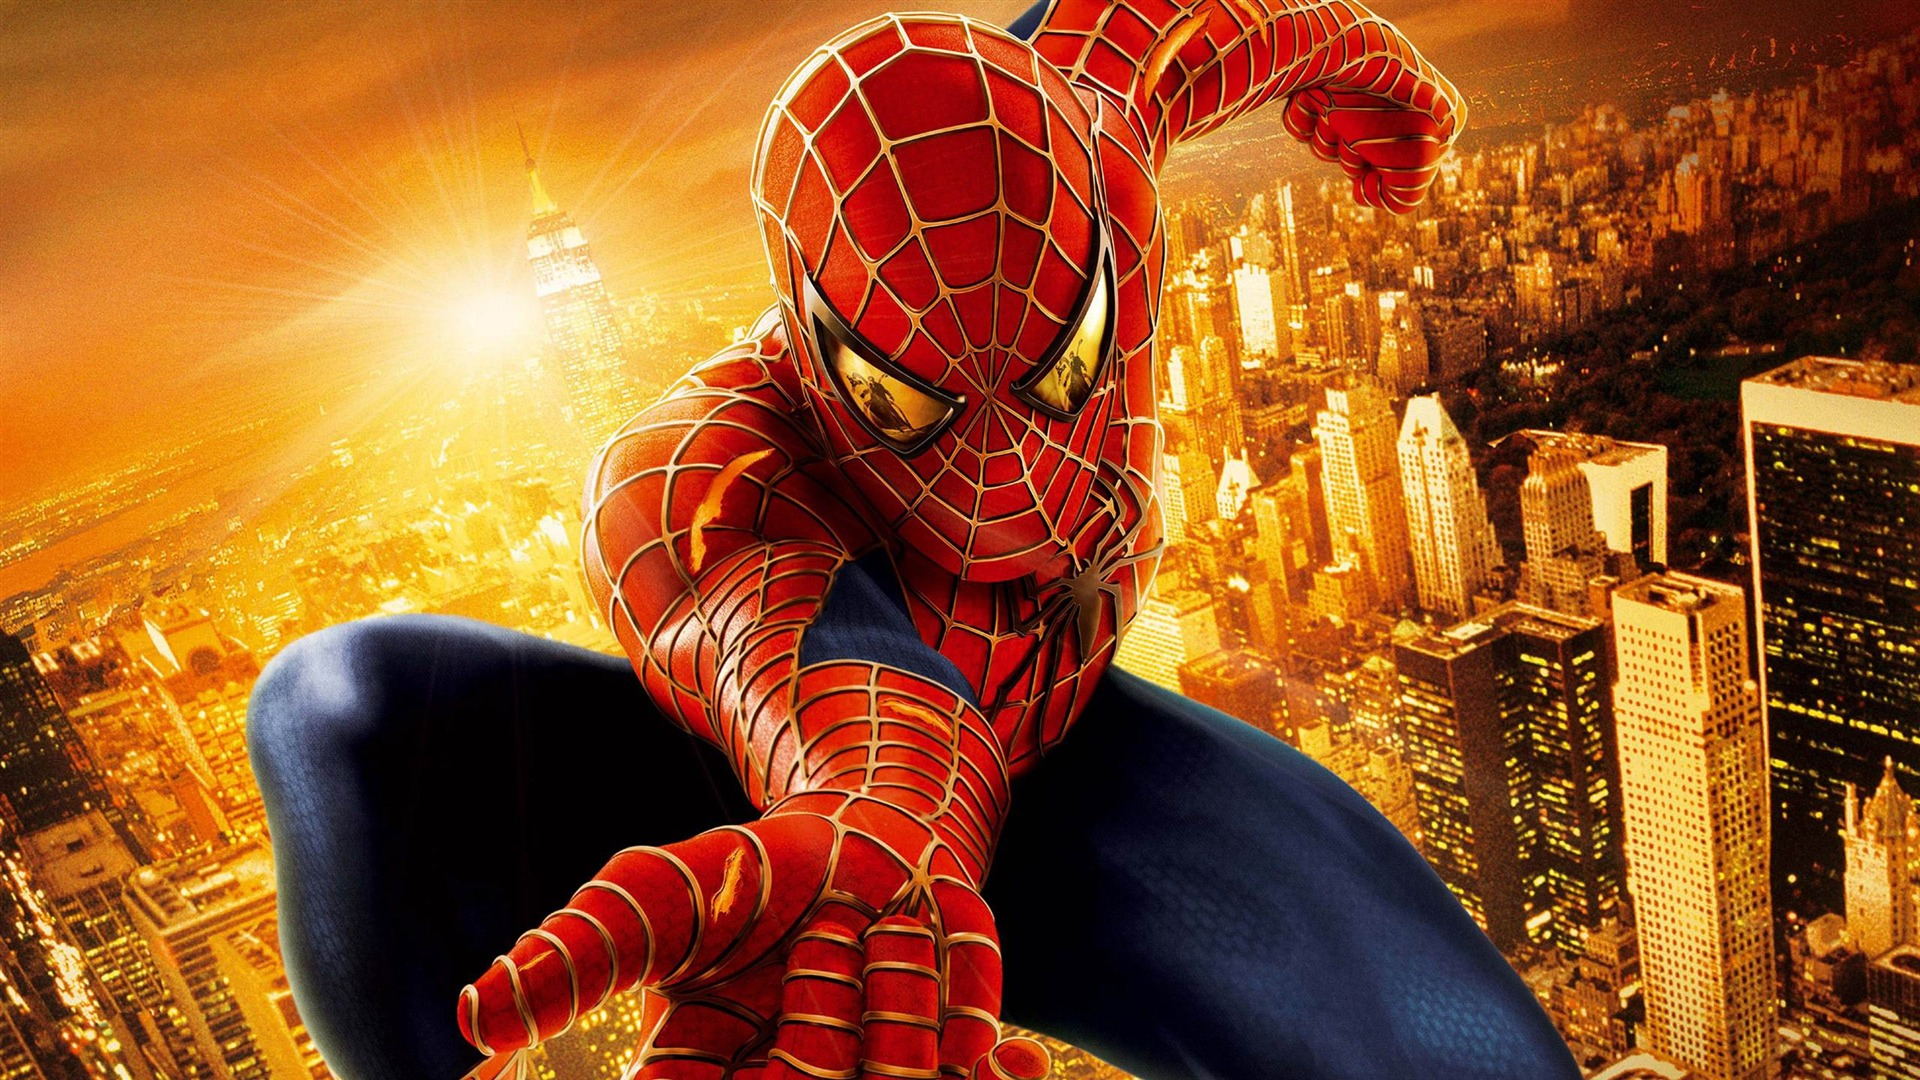 The Amazing Spider Man 2012 Hd Movie Wallpaper Avance